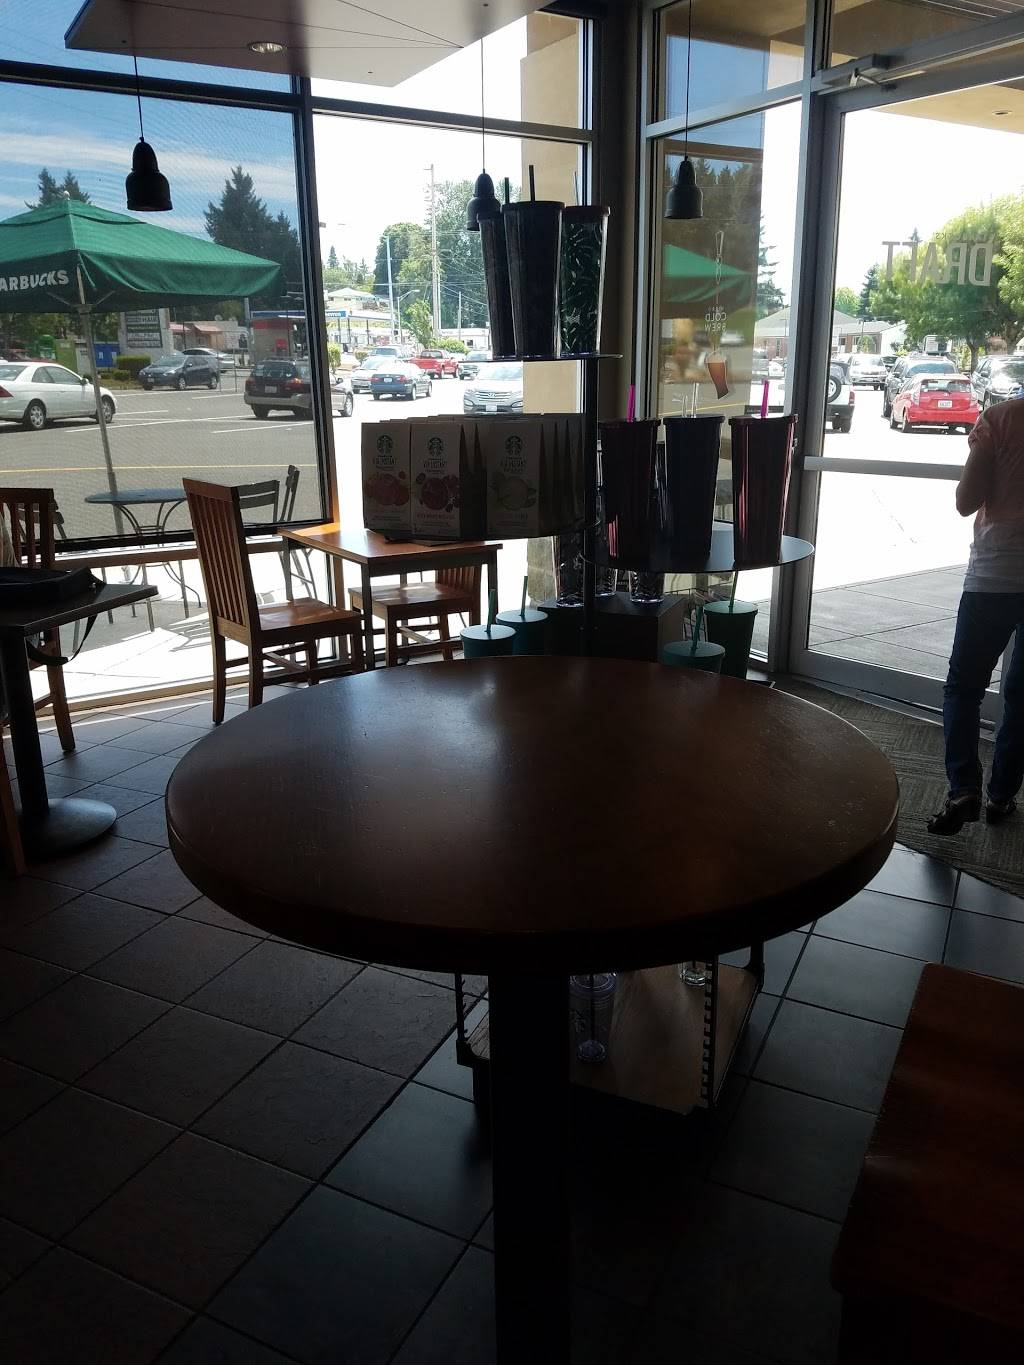 Starbucks | cafe | 17827 1st Ave S, Normandy Park, WA 98148, USA | 2062464644 OR +1 206-246-4644